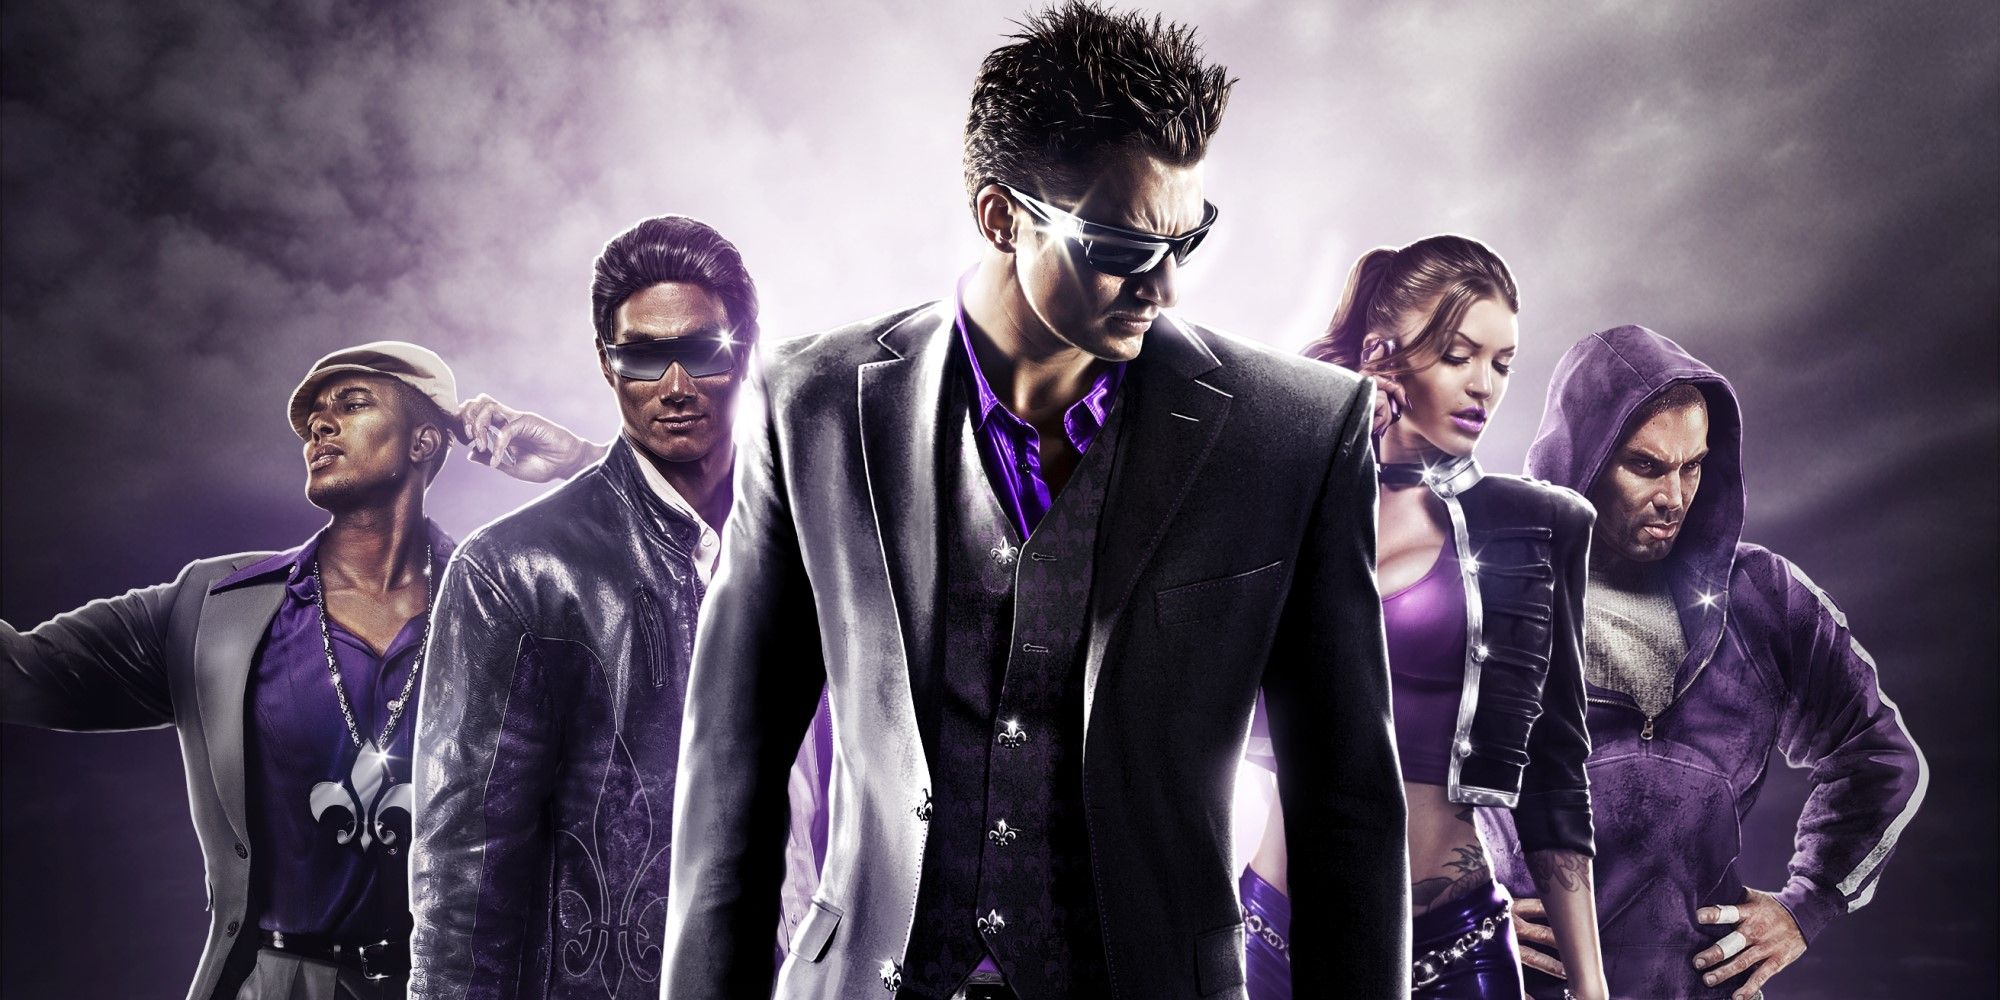 Saints Row: The Third Remastered Review- Beautiful But Outdated